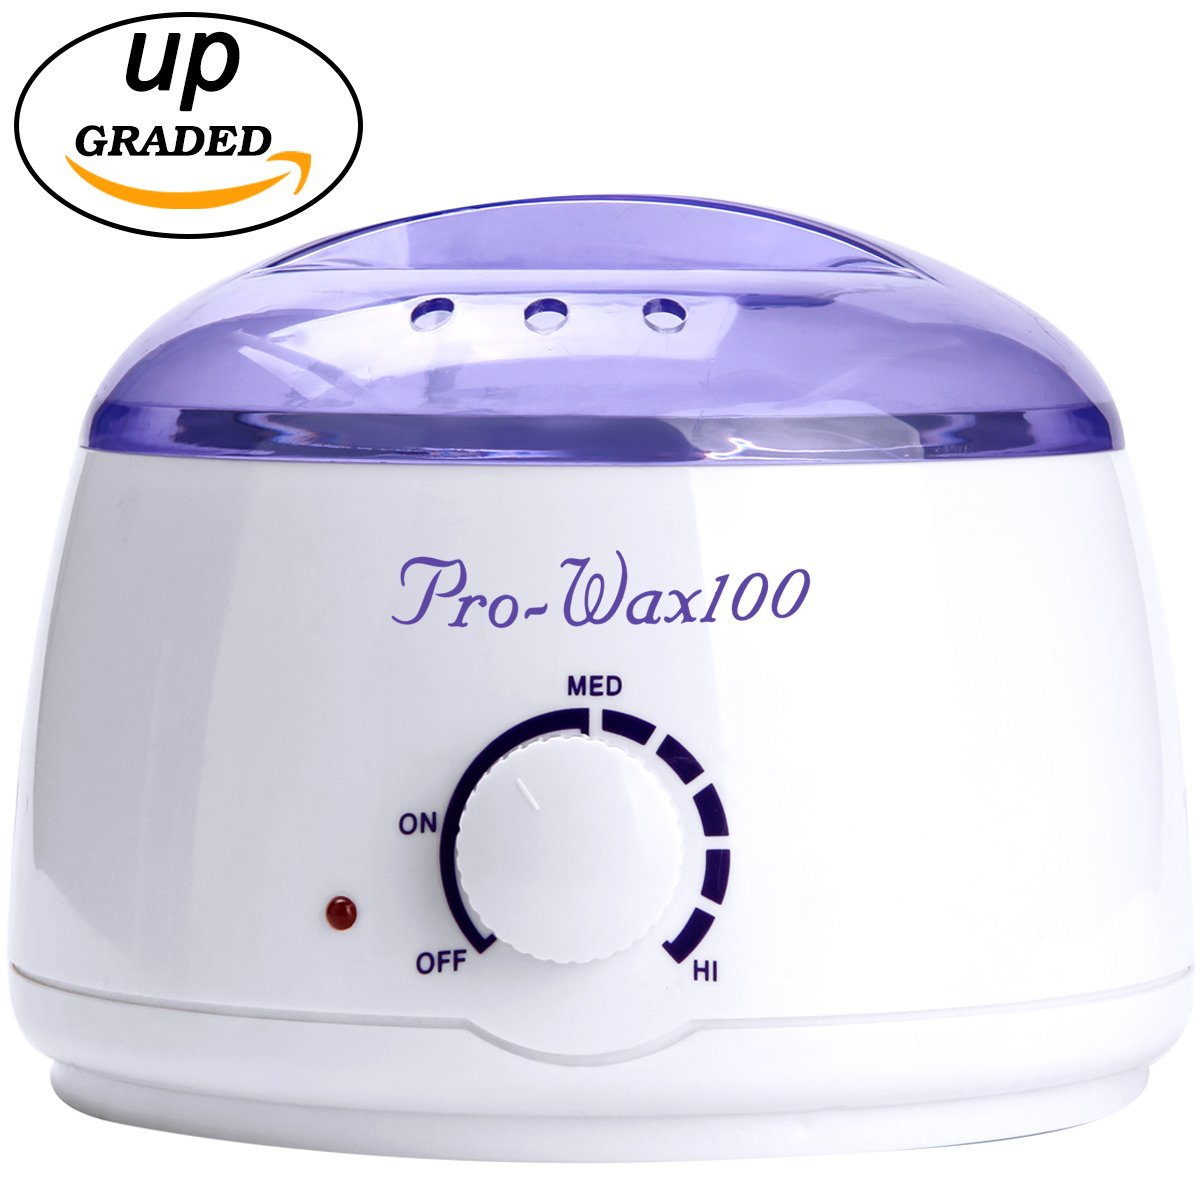 Wax Warmer E'YOBE Hair Removal Wax Warmer - 2018 Professional Painless Wax Pot Heater for Rapid Waxing of All Body, Face, Bikini Area, Legs(Blue)